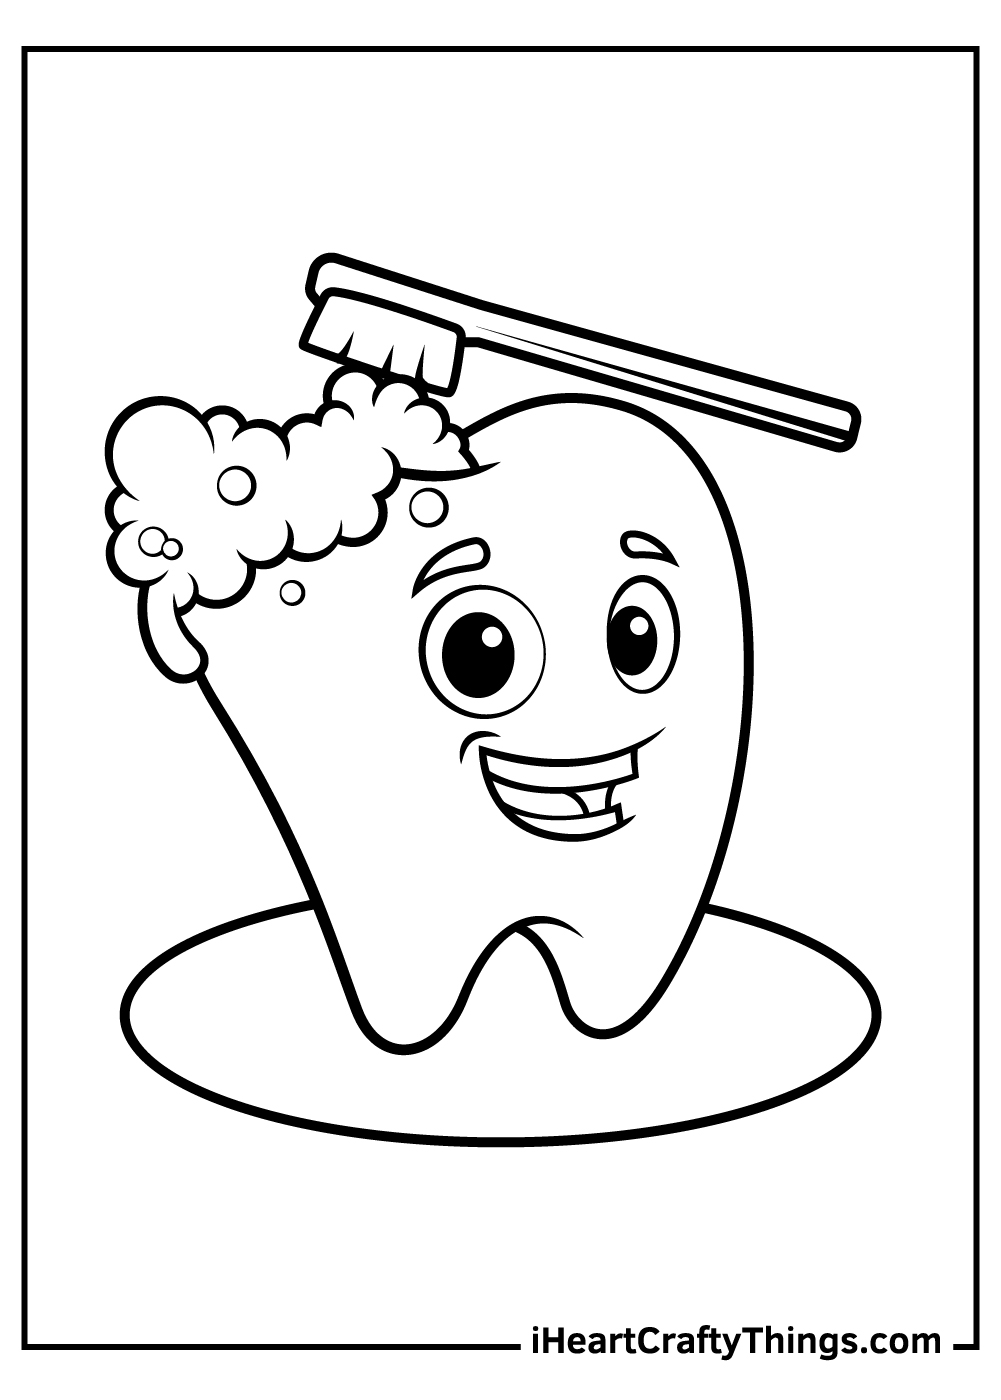 brush your teeth coloring pages free download for kids